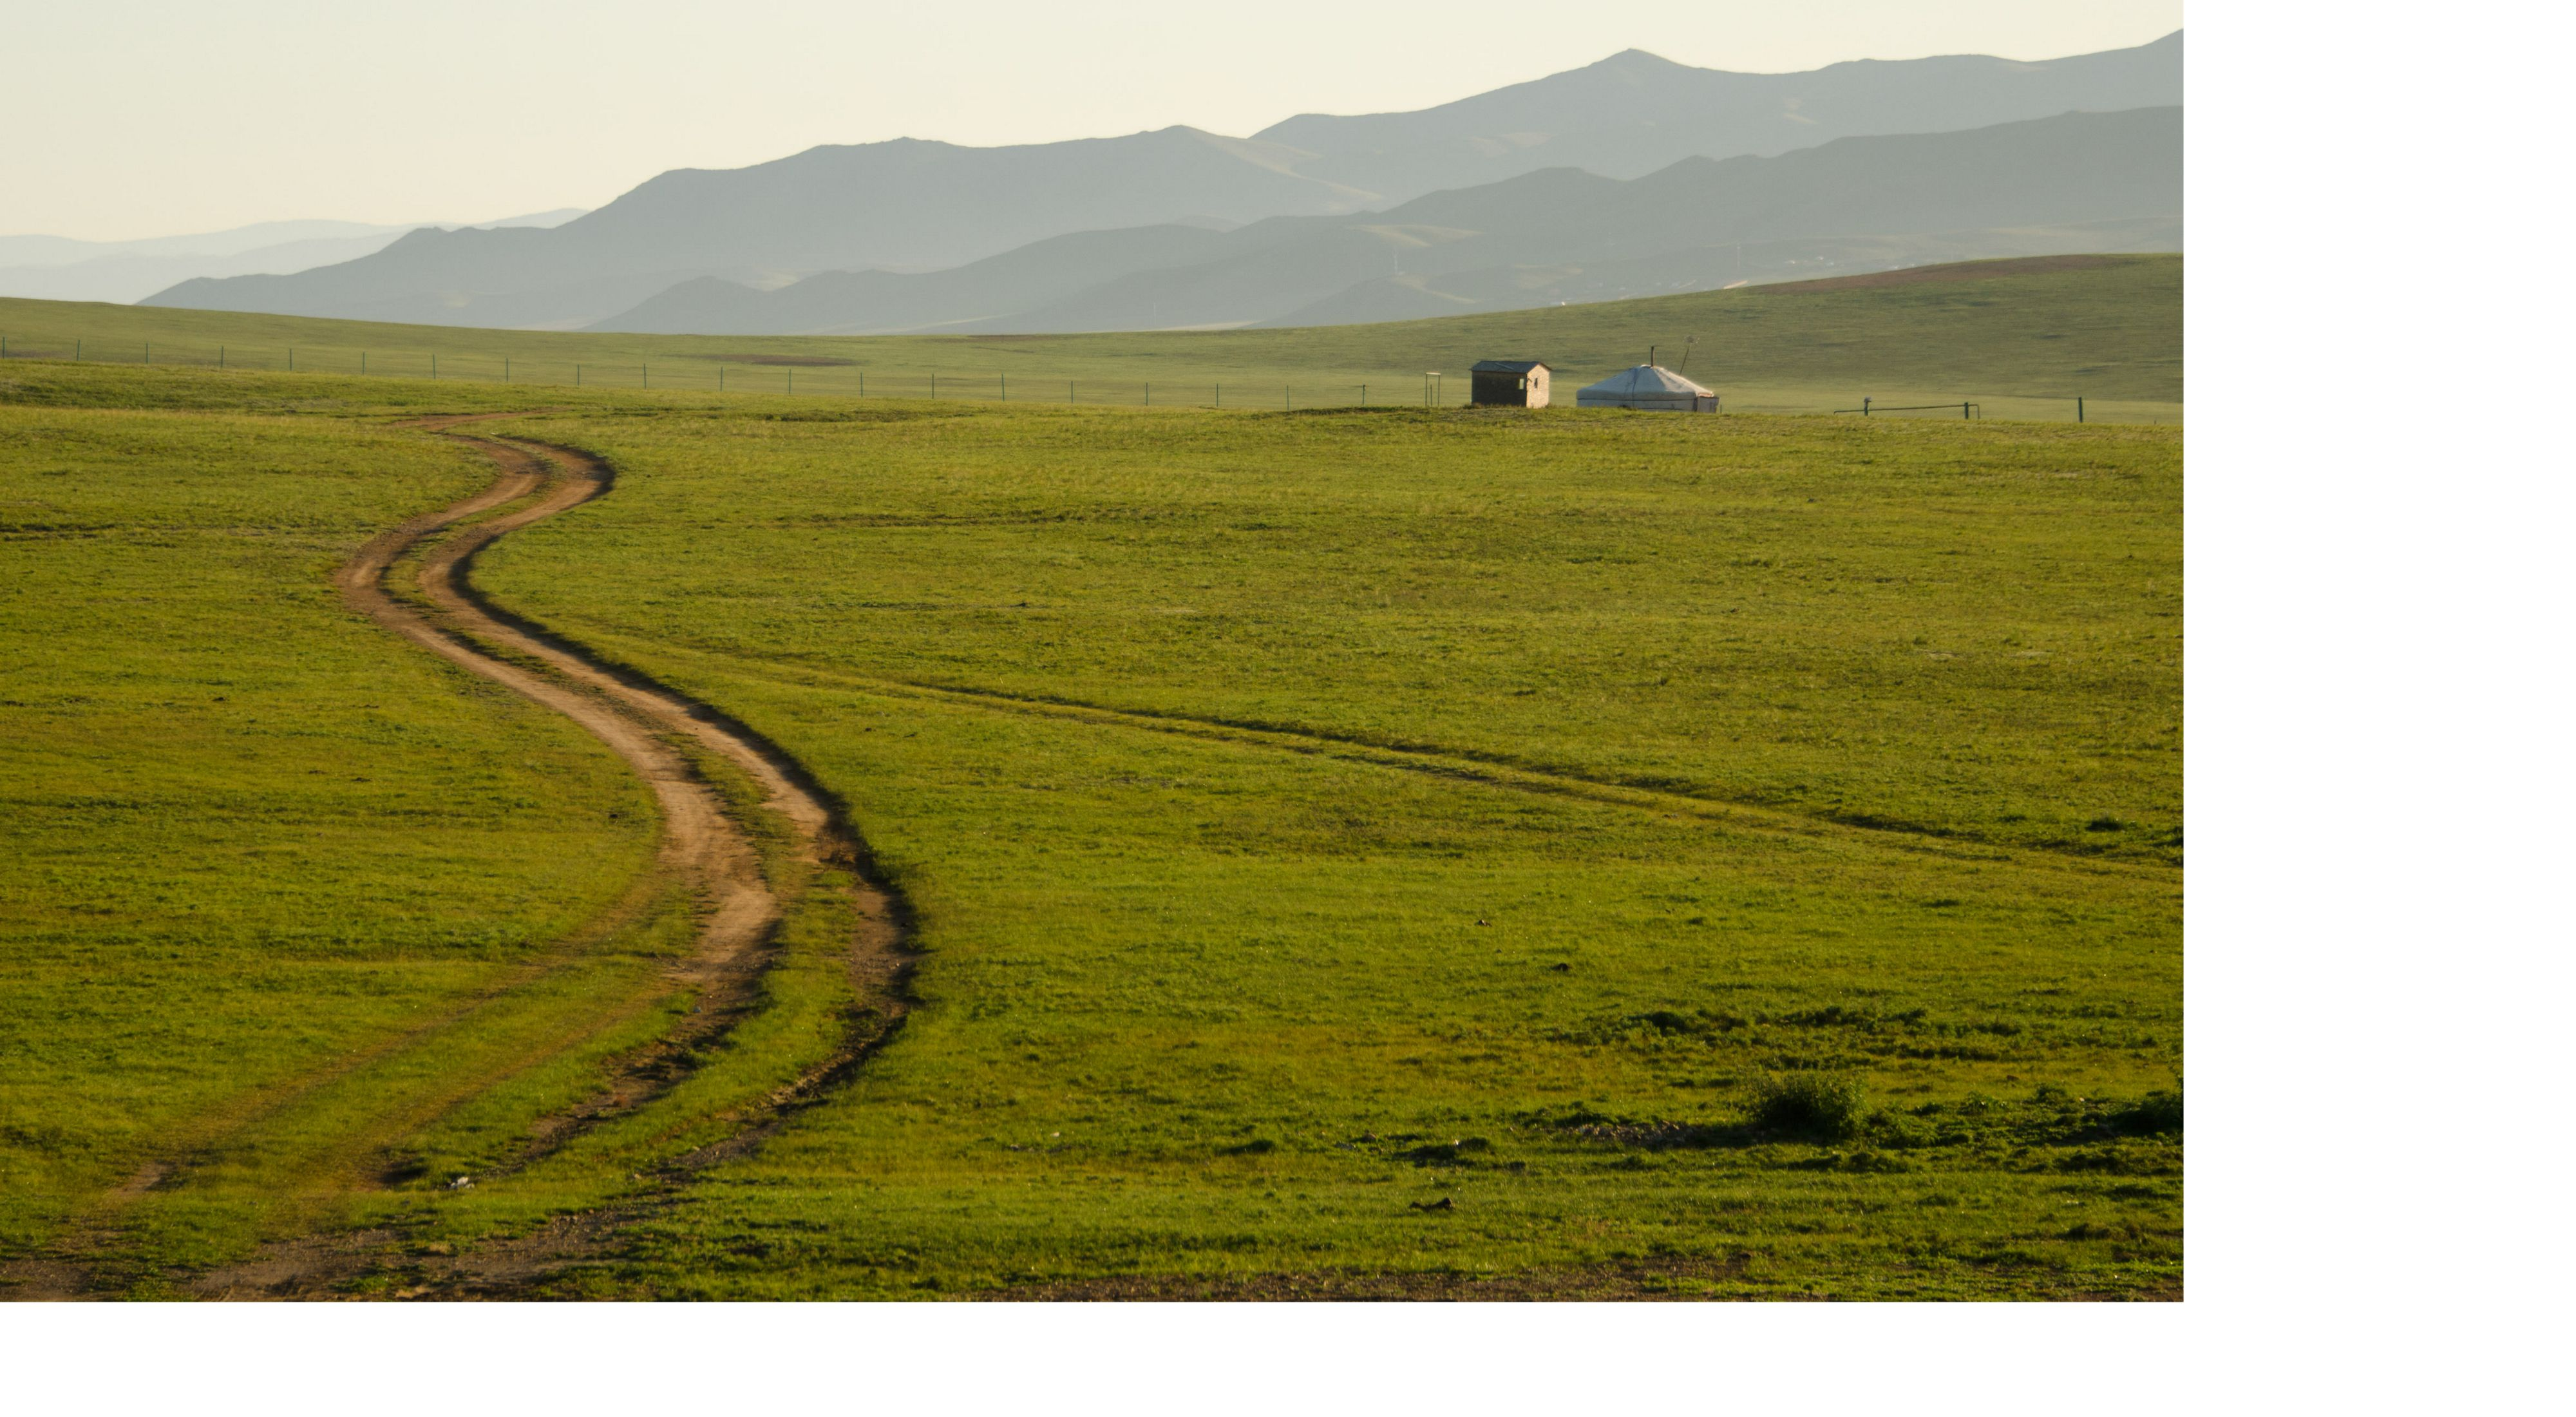 on the open grasslands of Mongolia in central Asia